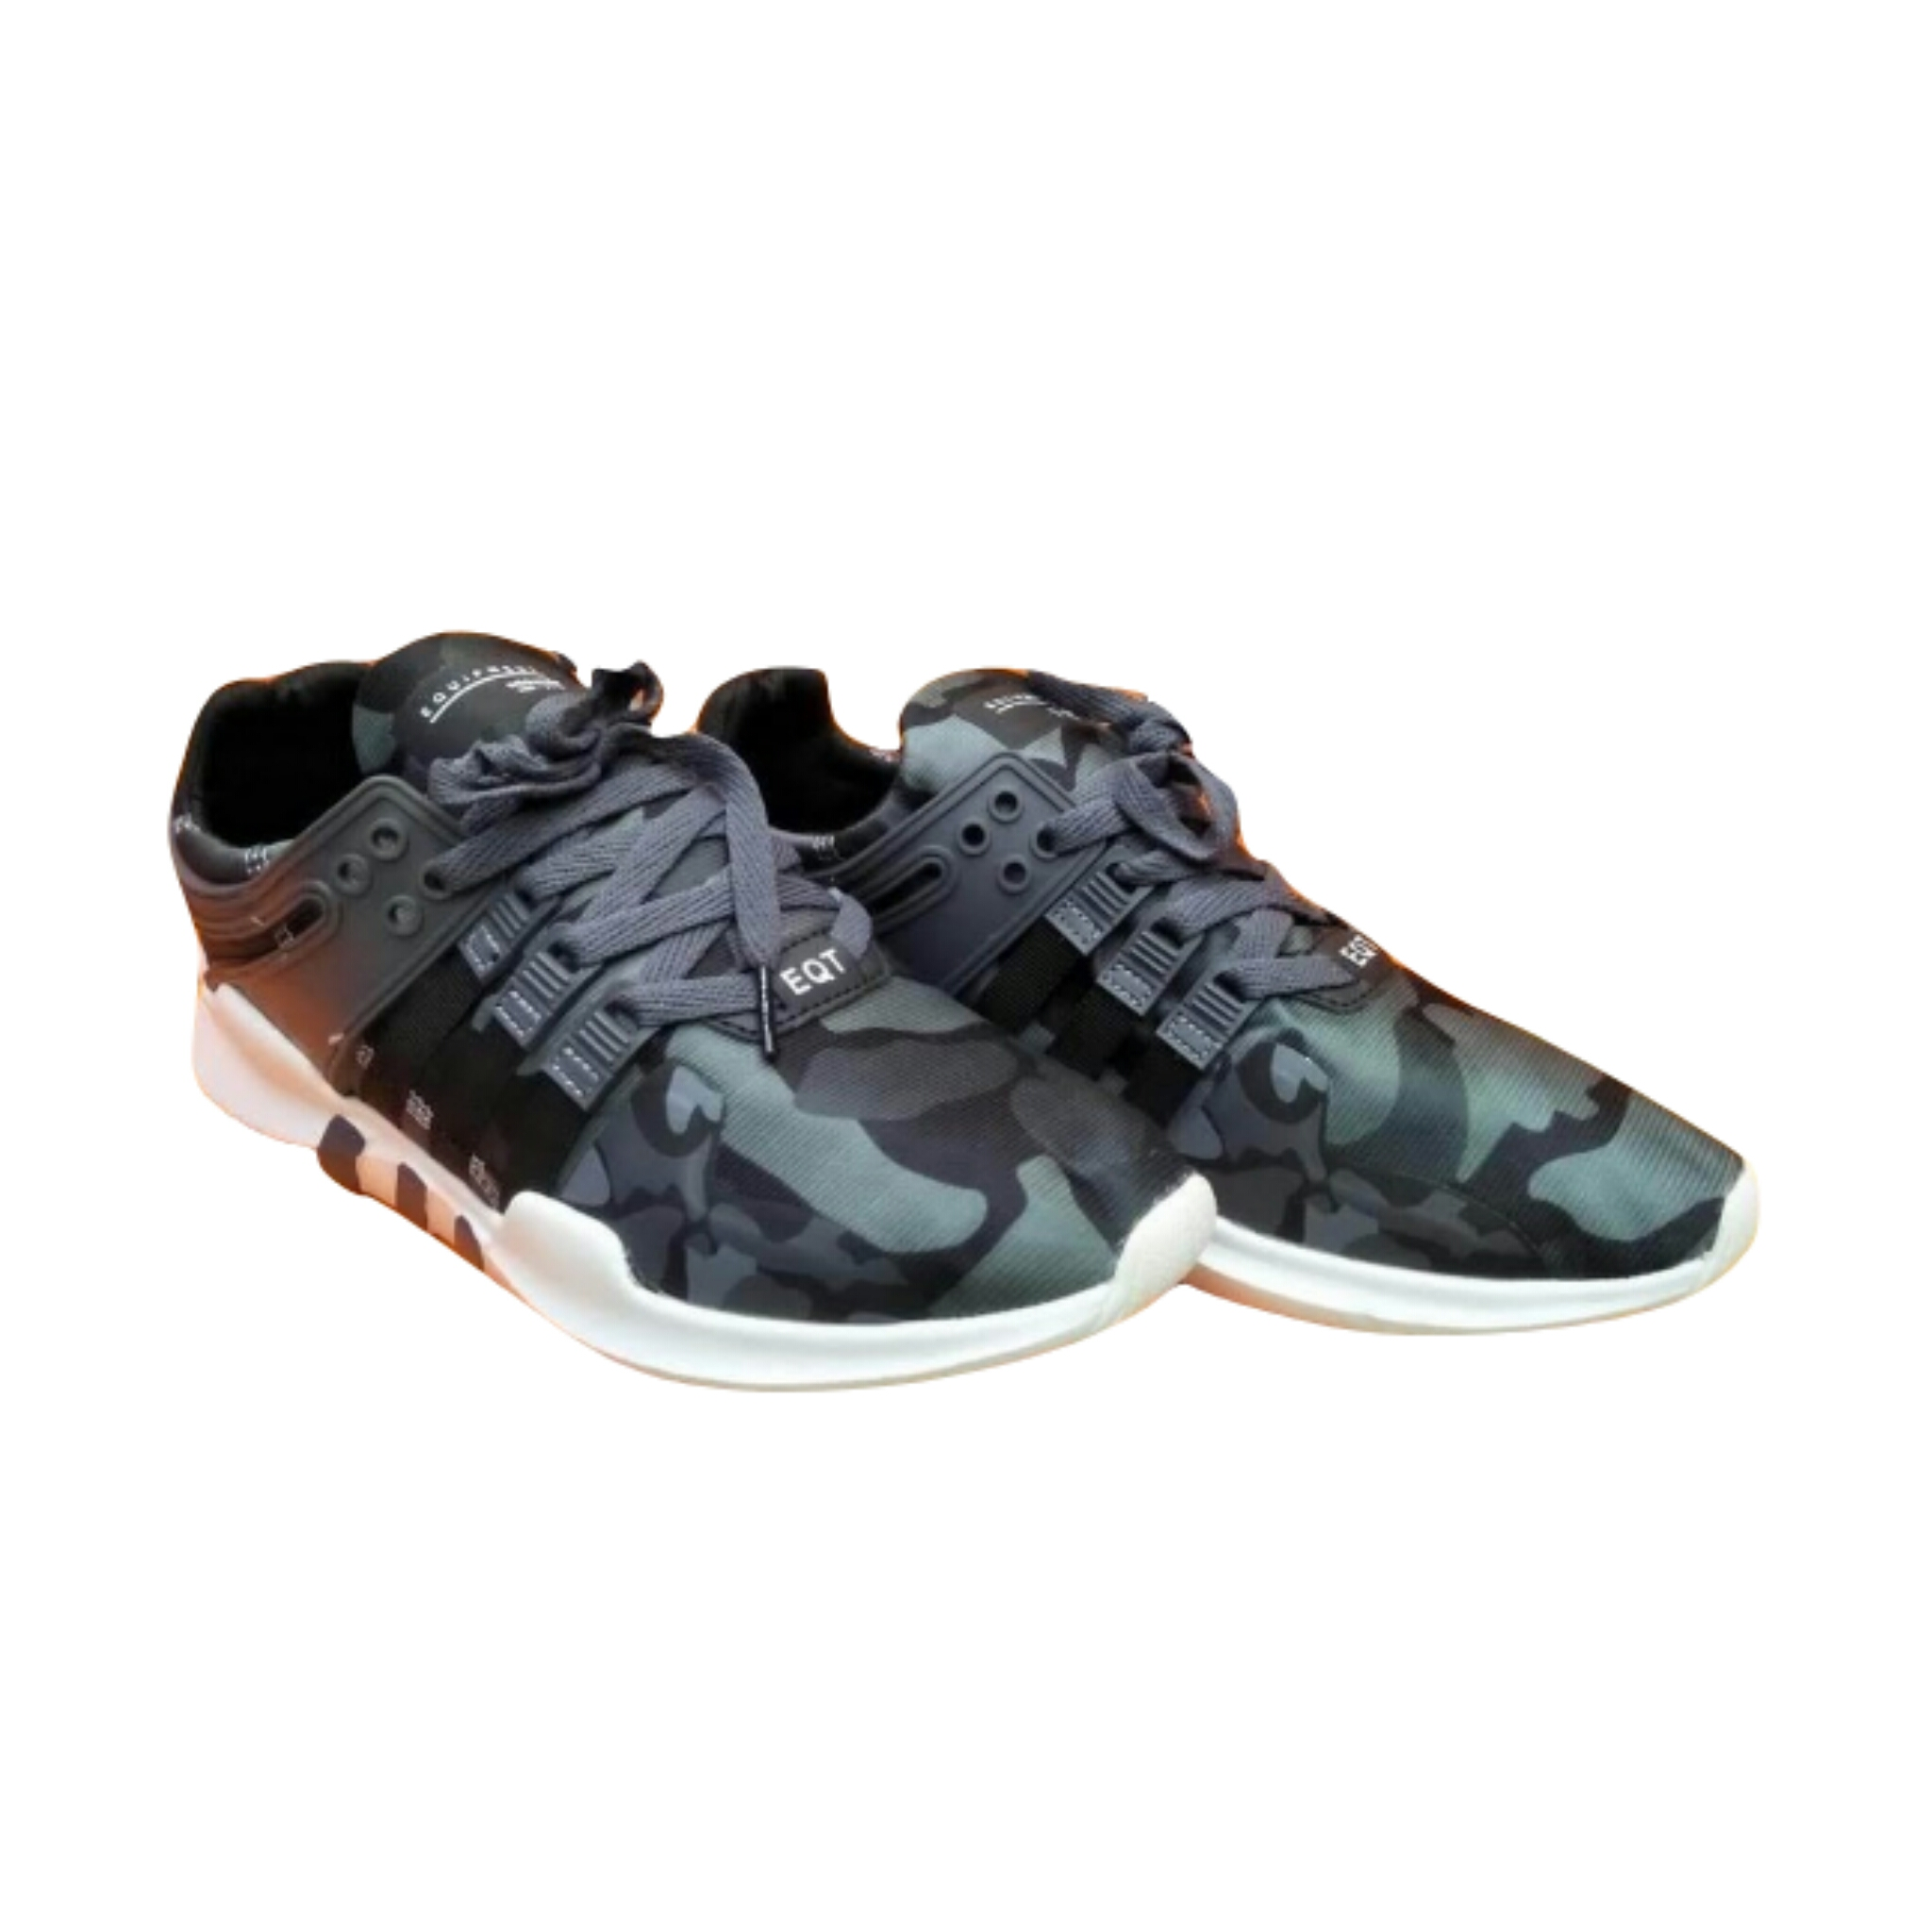 d291013a1ffc Buy Adidas Shoes EQT Support In Pakistan - Buy Shoes Online In Pakistan